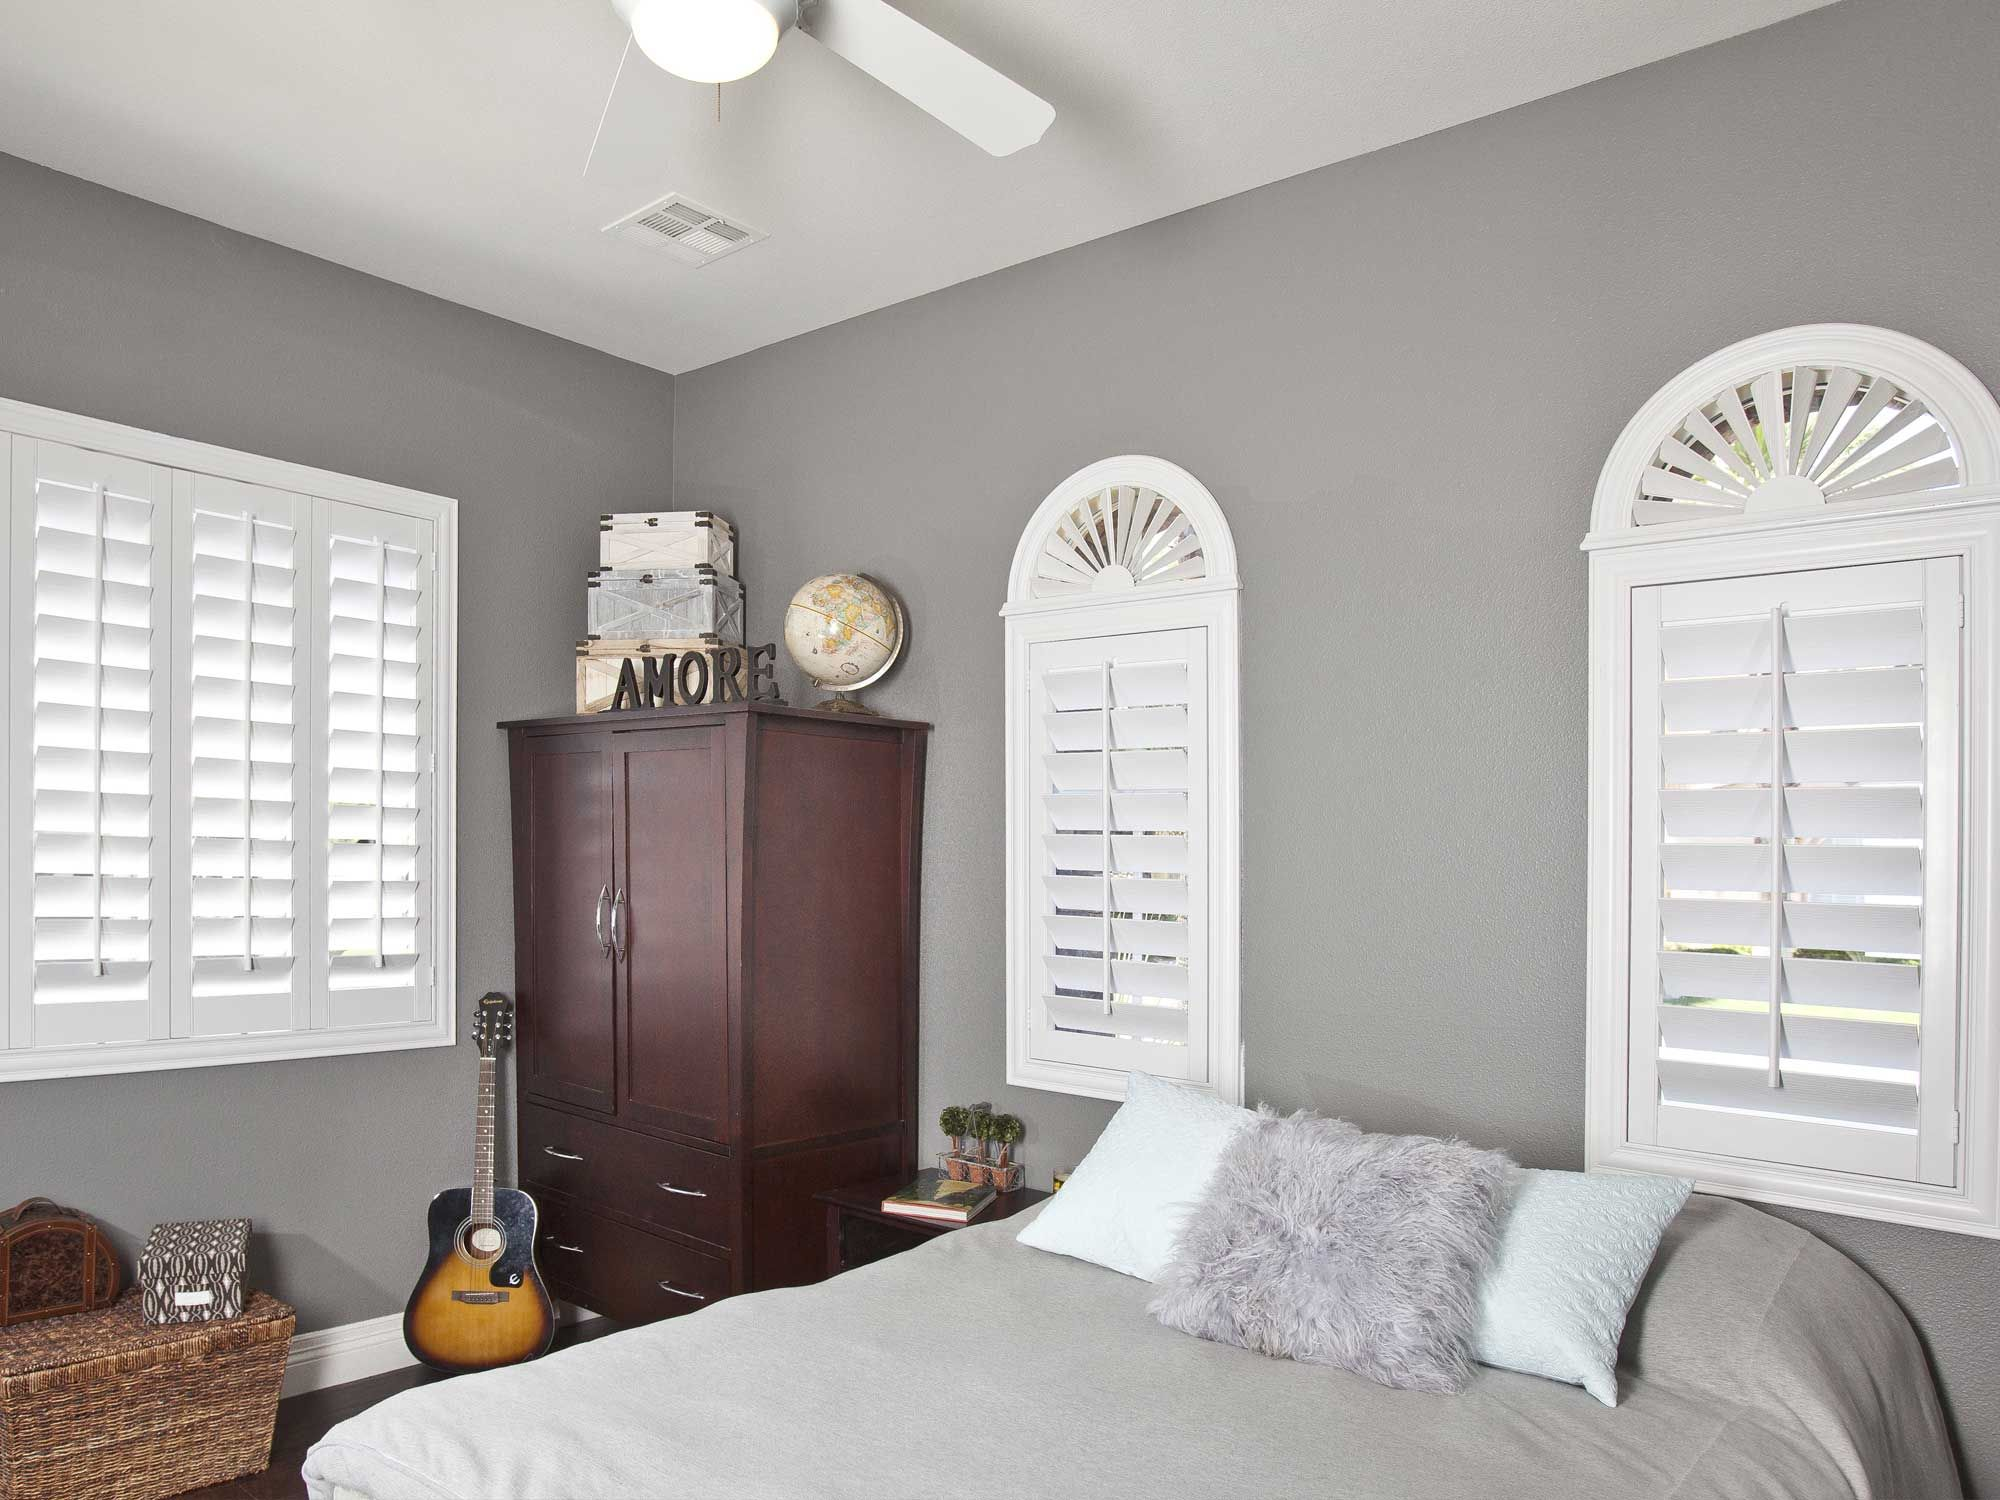 Window treatments for eyebrow windows - Window Covering Ideas Inspiration Arched Windows With Polywood Shutters